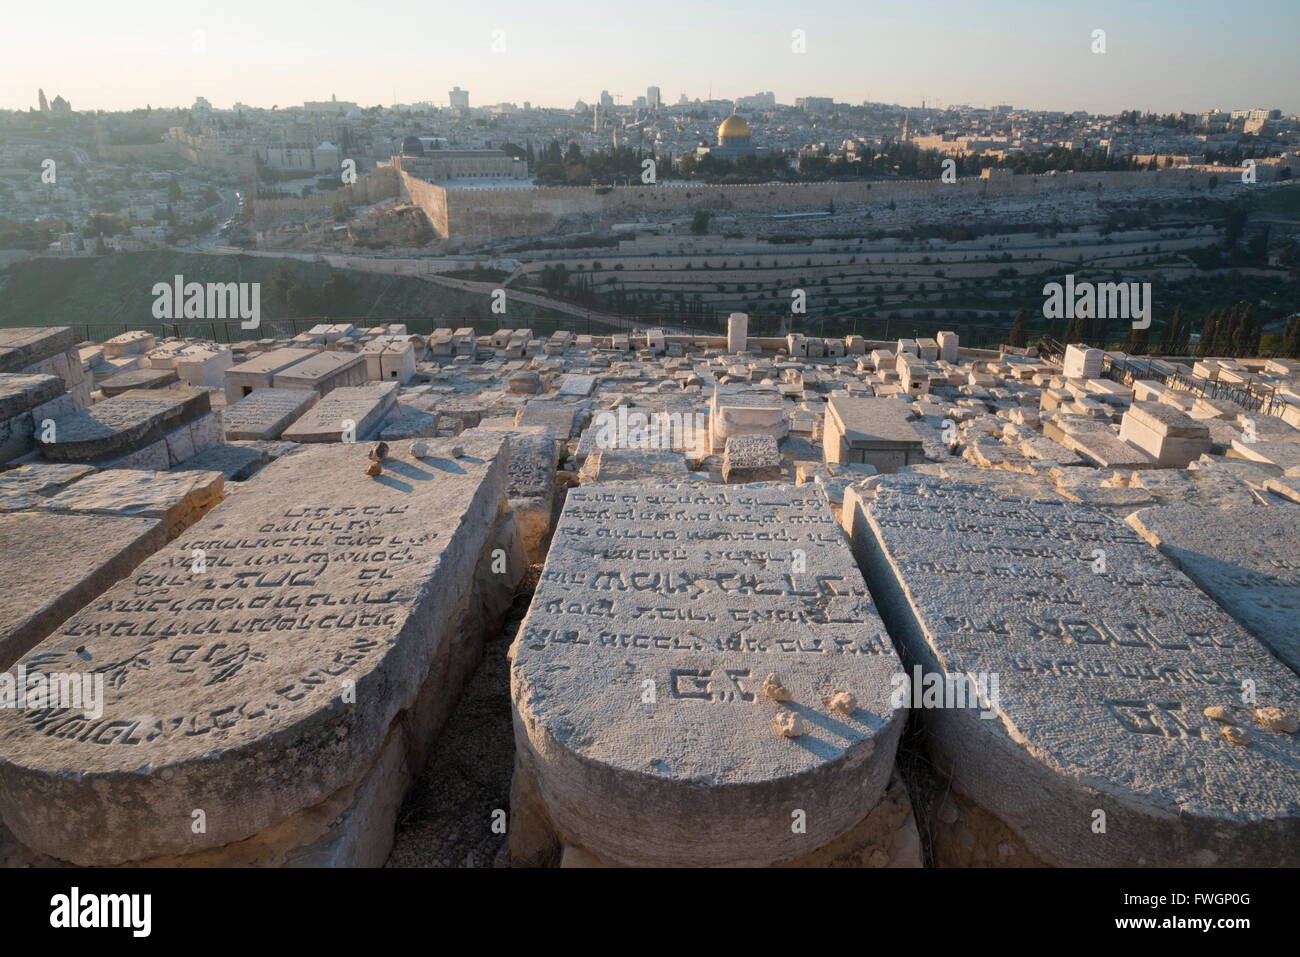 Tombstones on the Mount of Olives with the Old City in Background, Jerusalem, Israel, Middle East - Stock Image